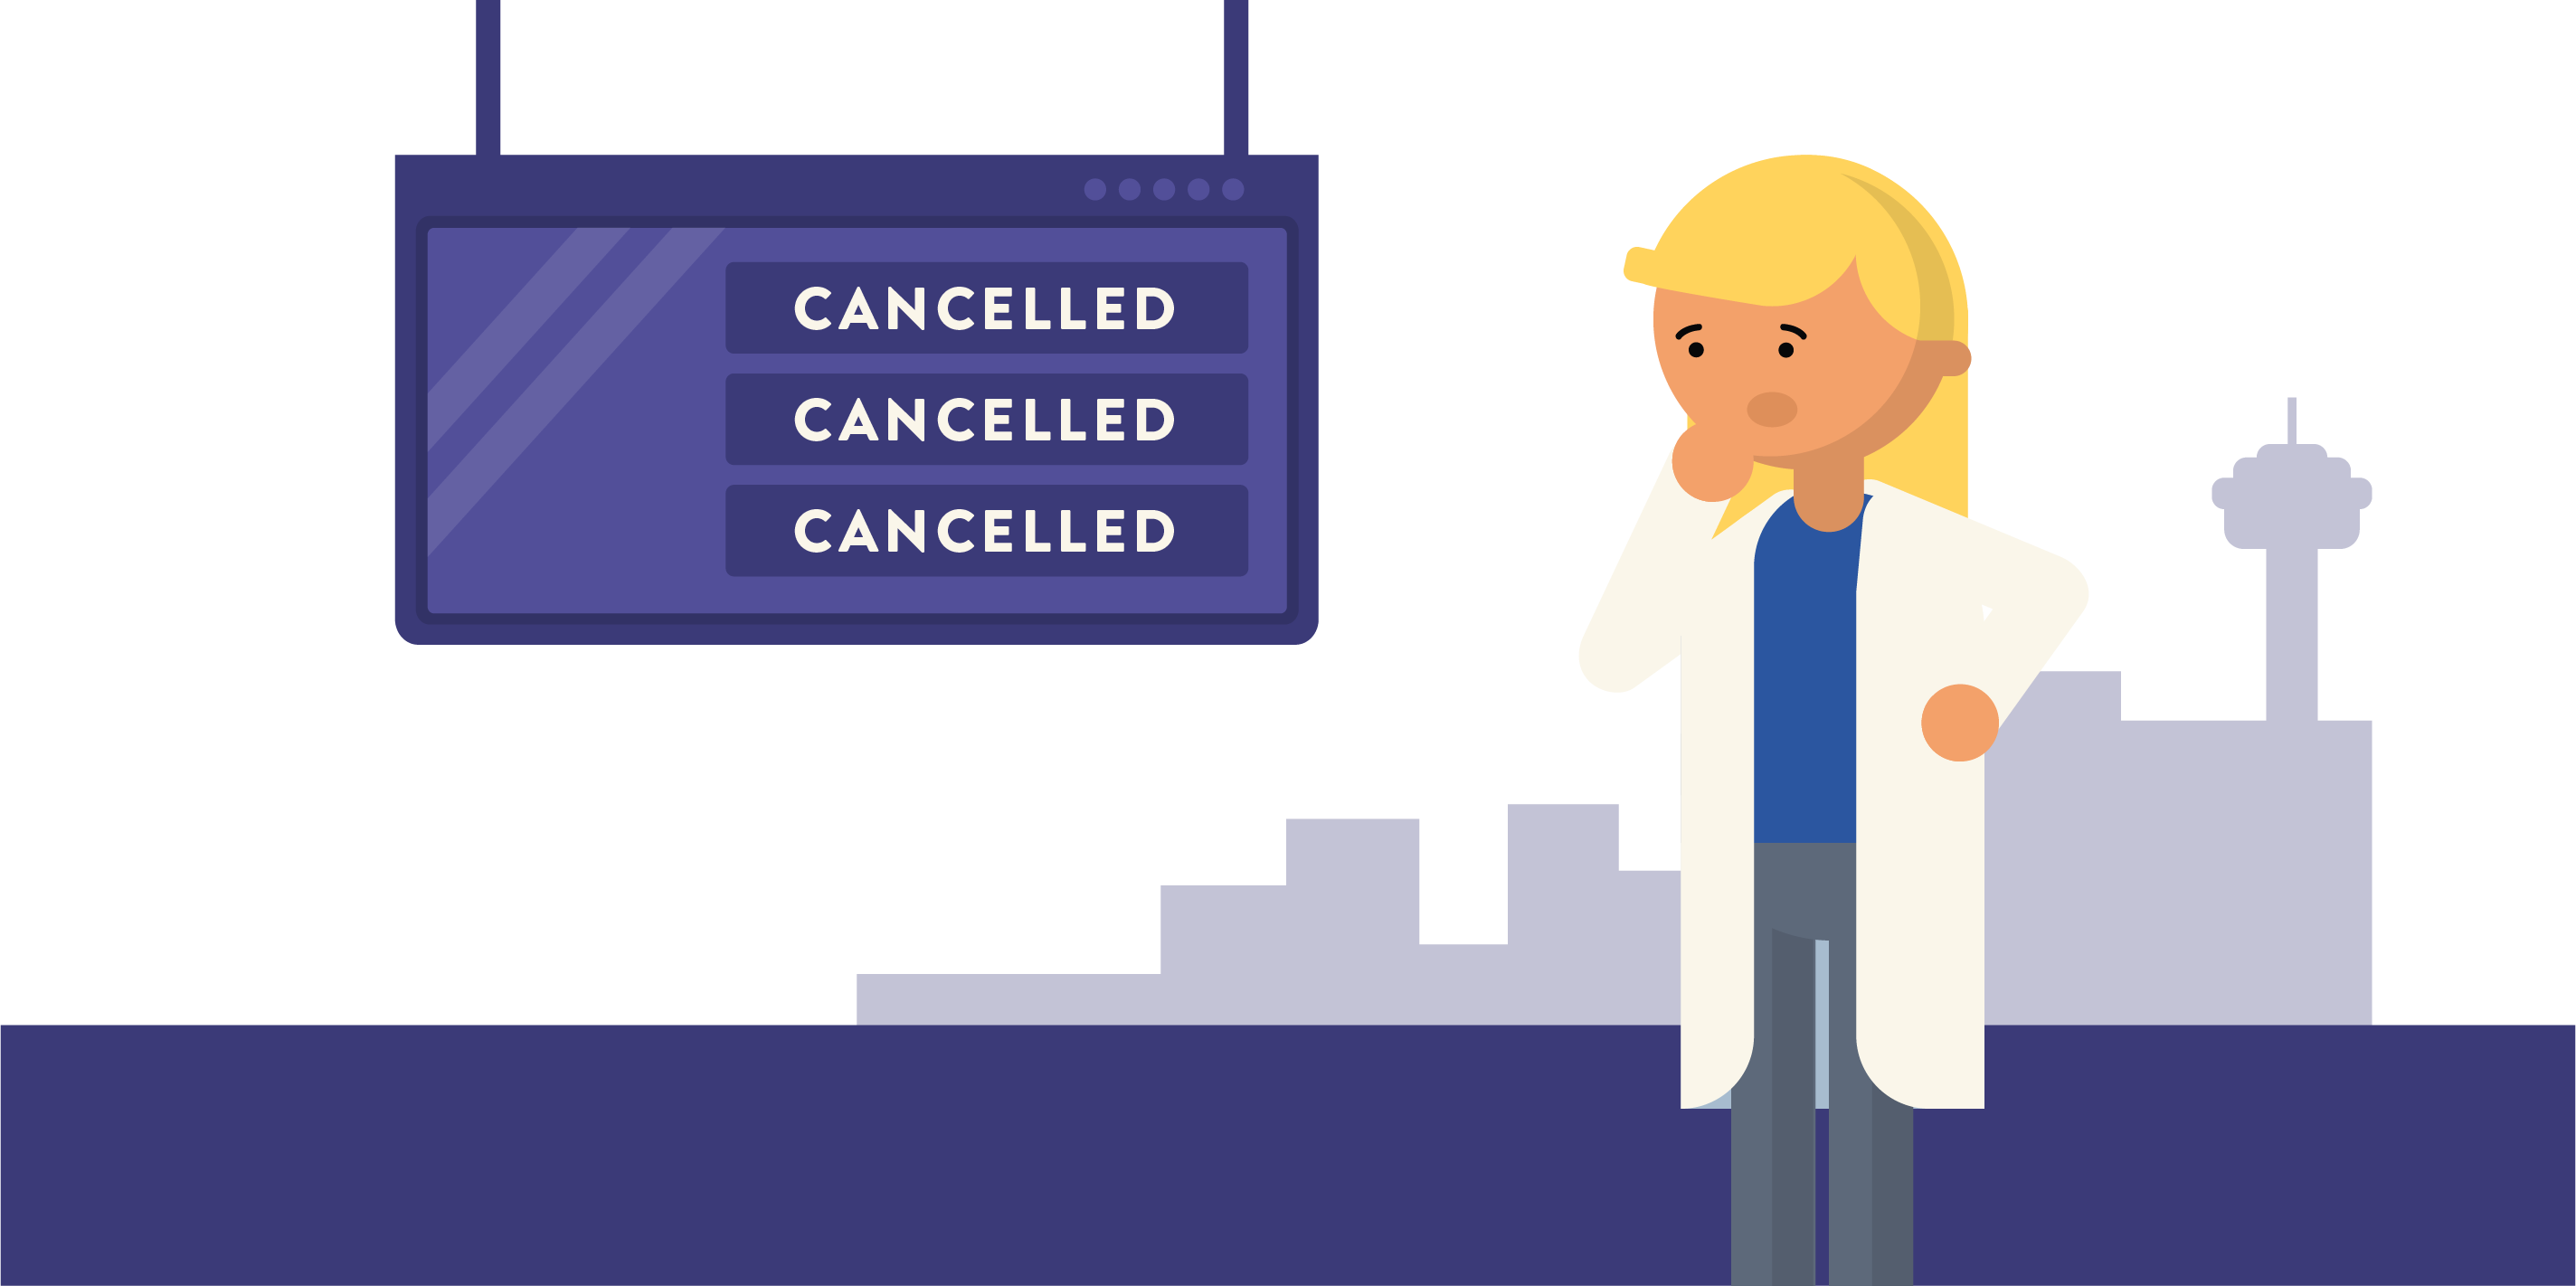 Scientist standing in front of cancelled sign